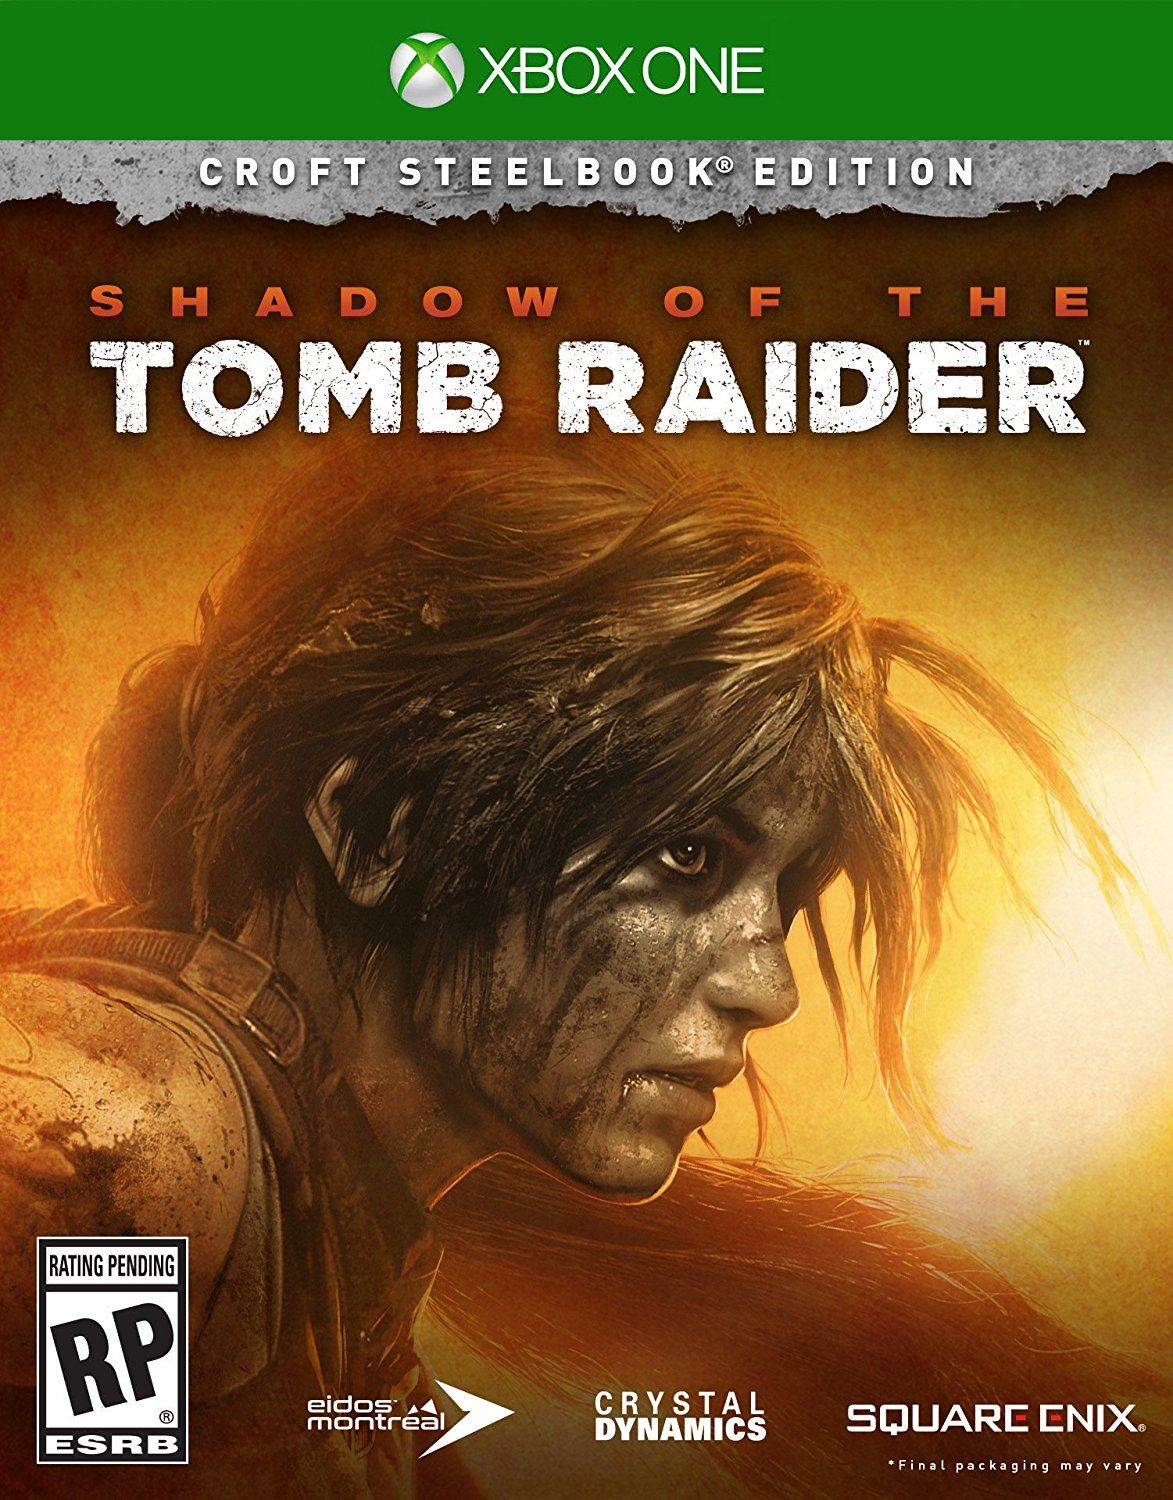 Shadow of the Tomb Raider - Croft Steelbook Edition [Xbox One] Release date: September 14. 2018 | Description: The Shadow of the… | Tomb raider ...